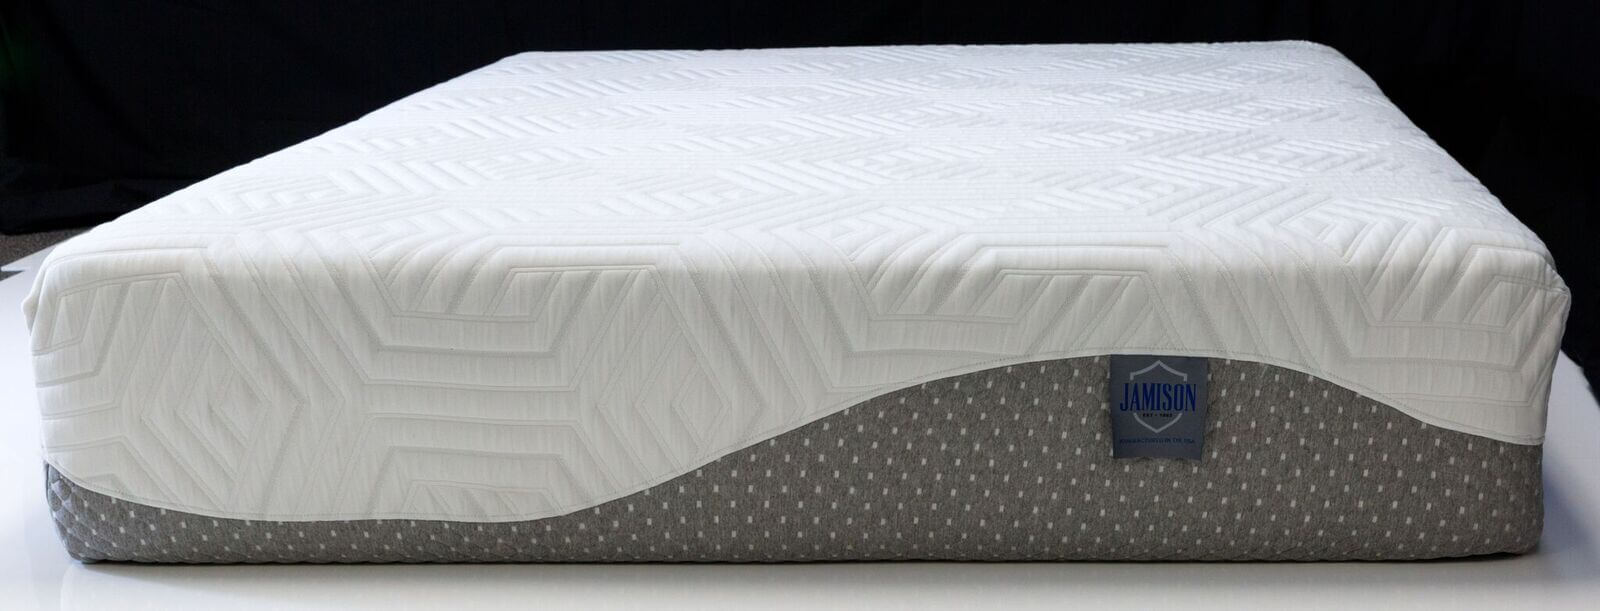 Jamison Tlc 11 5 Quot Pure Natural Latex Plush Ii Mattress 100